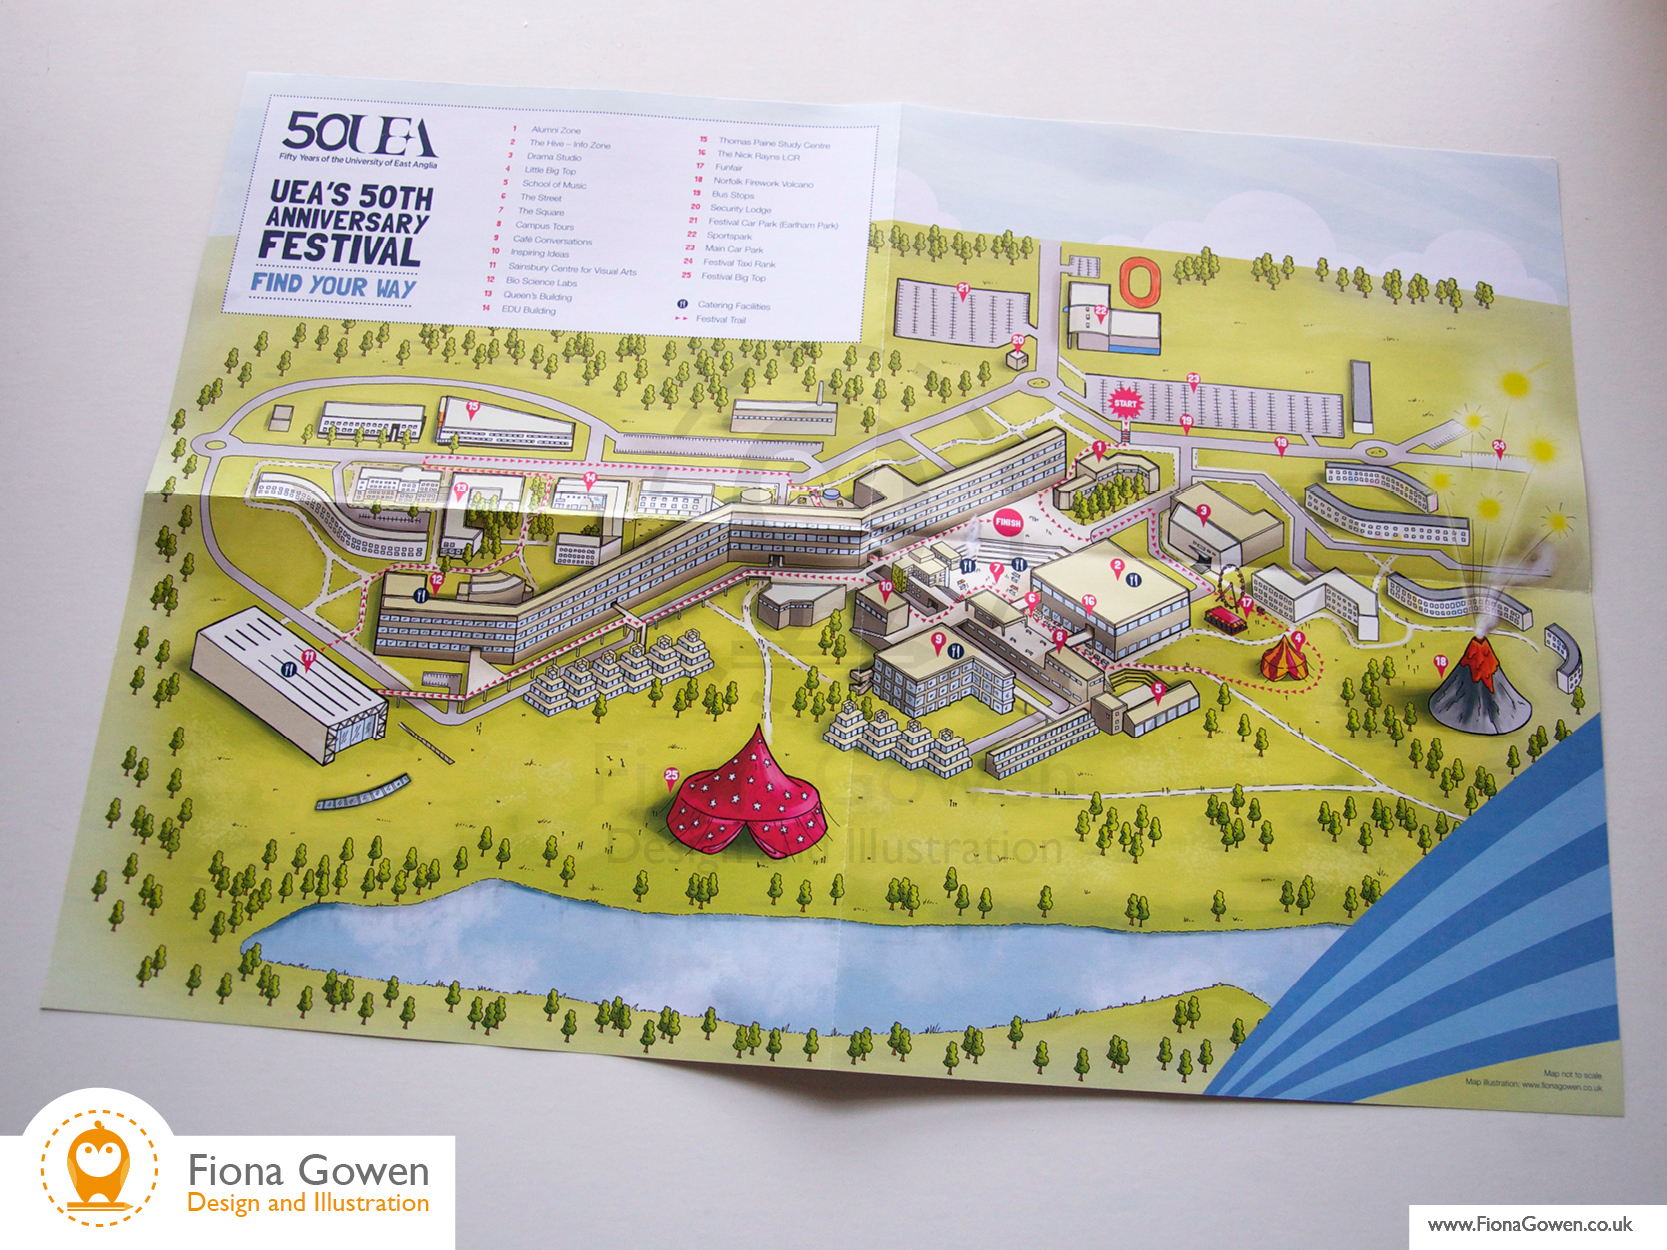 Fold out visitor map for UEA University of East Anglia 50th Anniversary festival Map artwork by Fiona Gowen